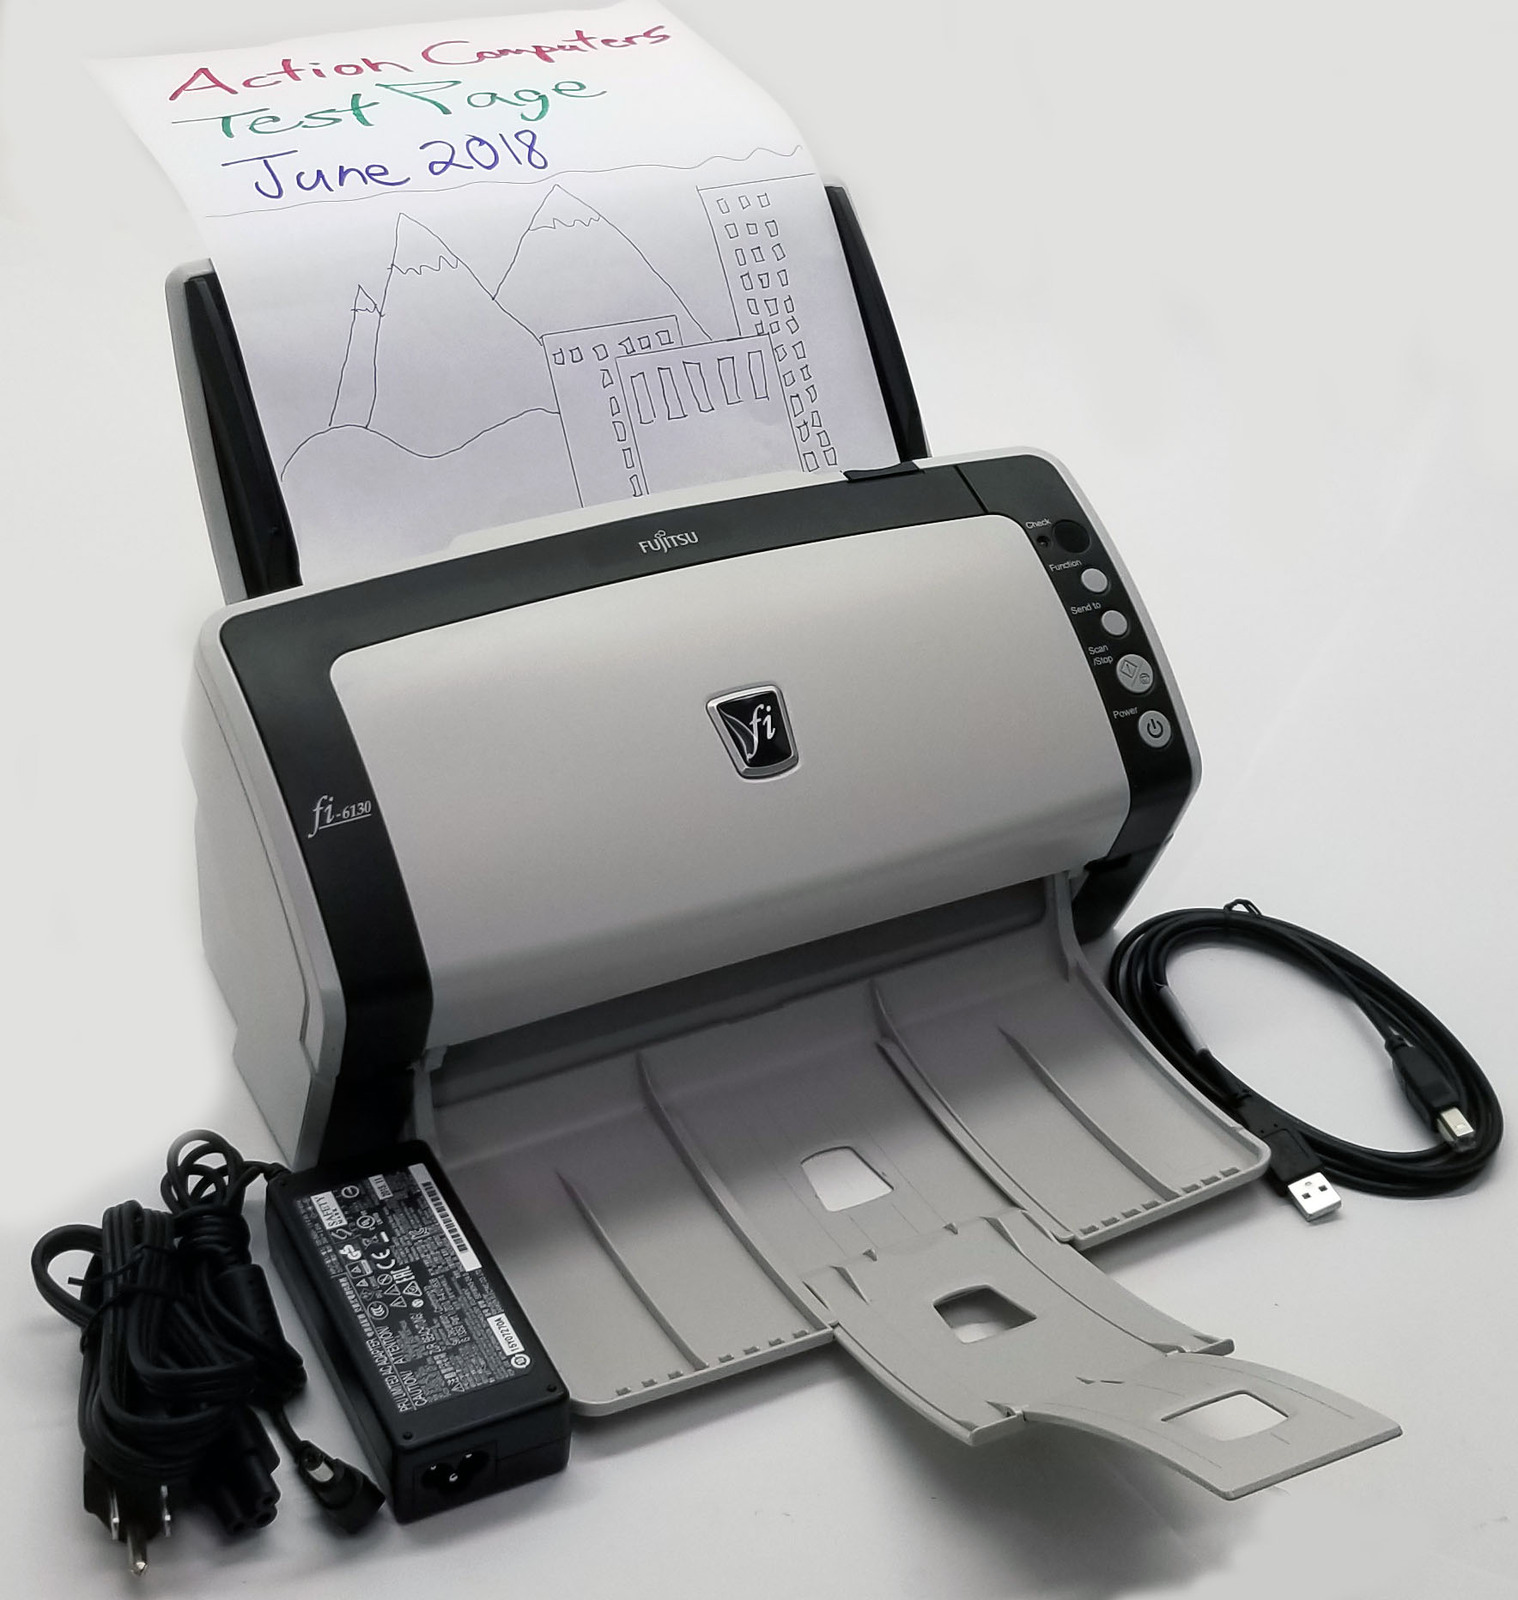 Fujitsu Fi-6130 Duplex Document Scanner 600 DPI Bin:13